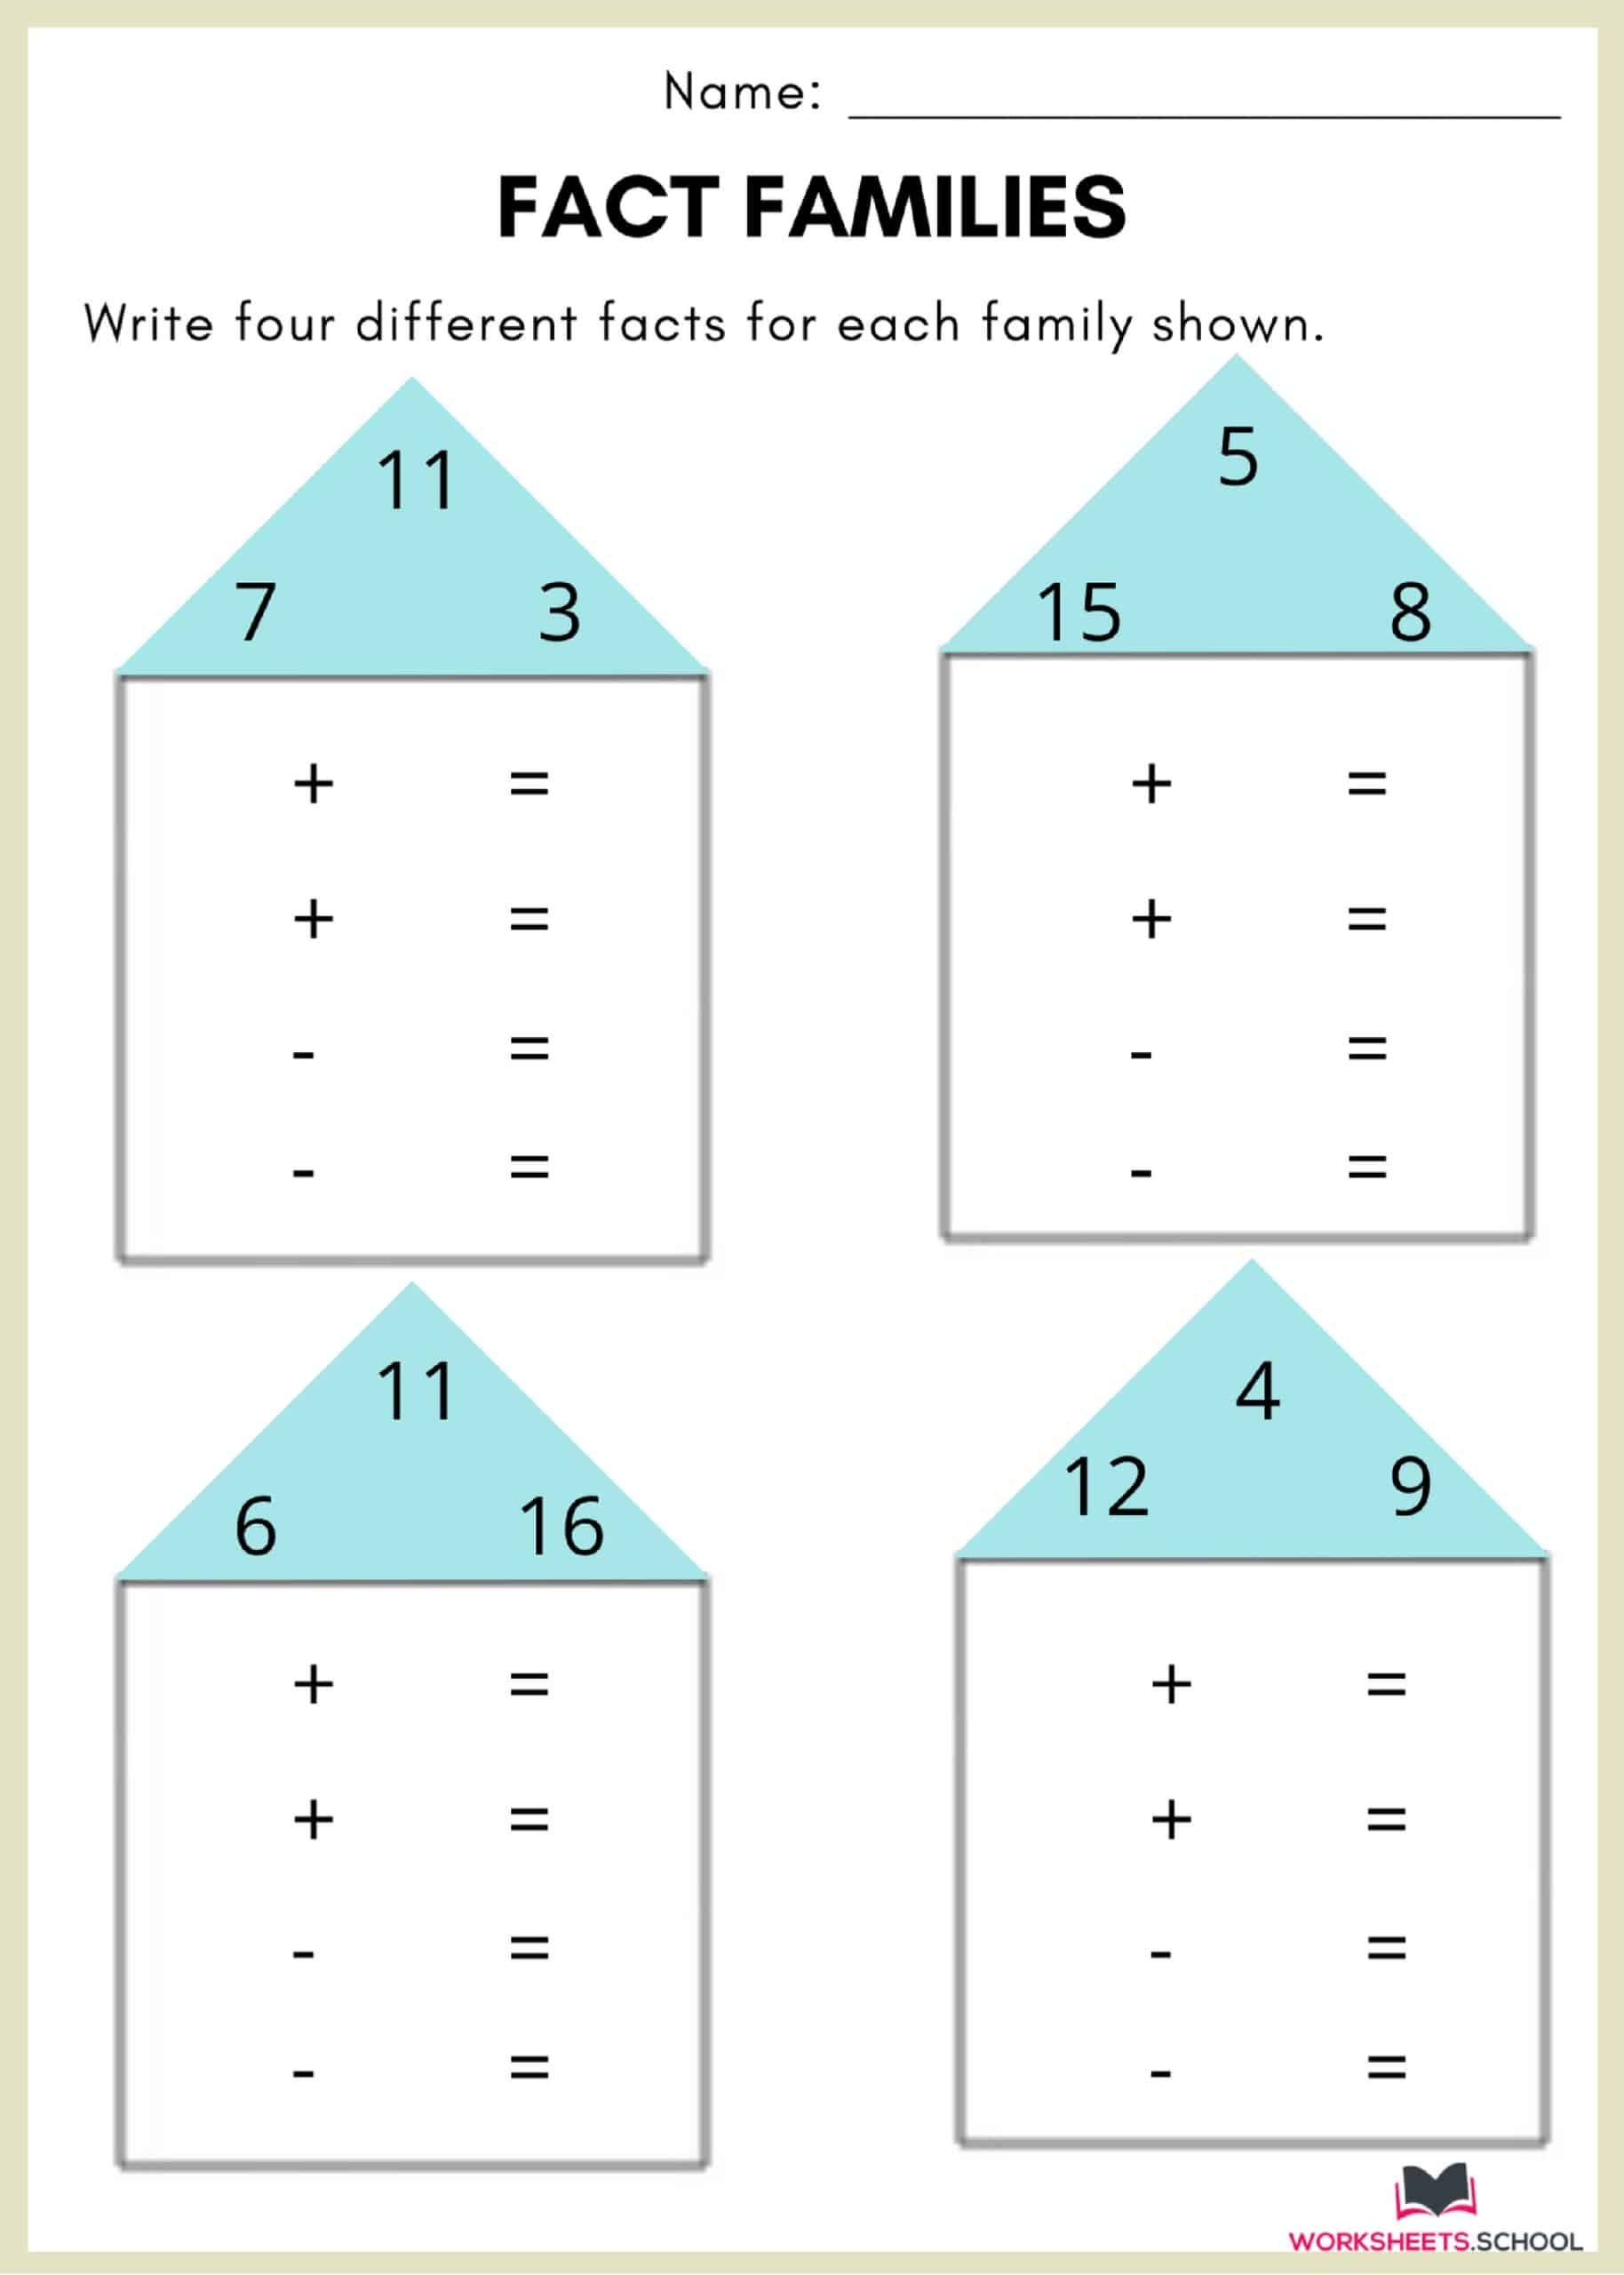 Fact Family Worksheet 5